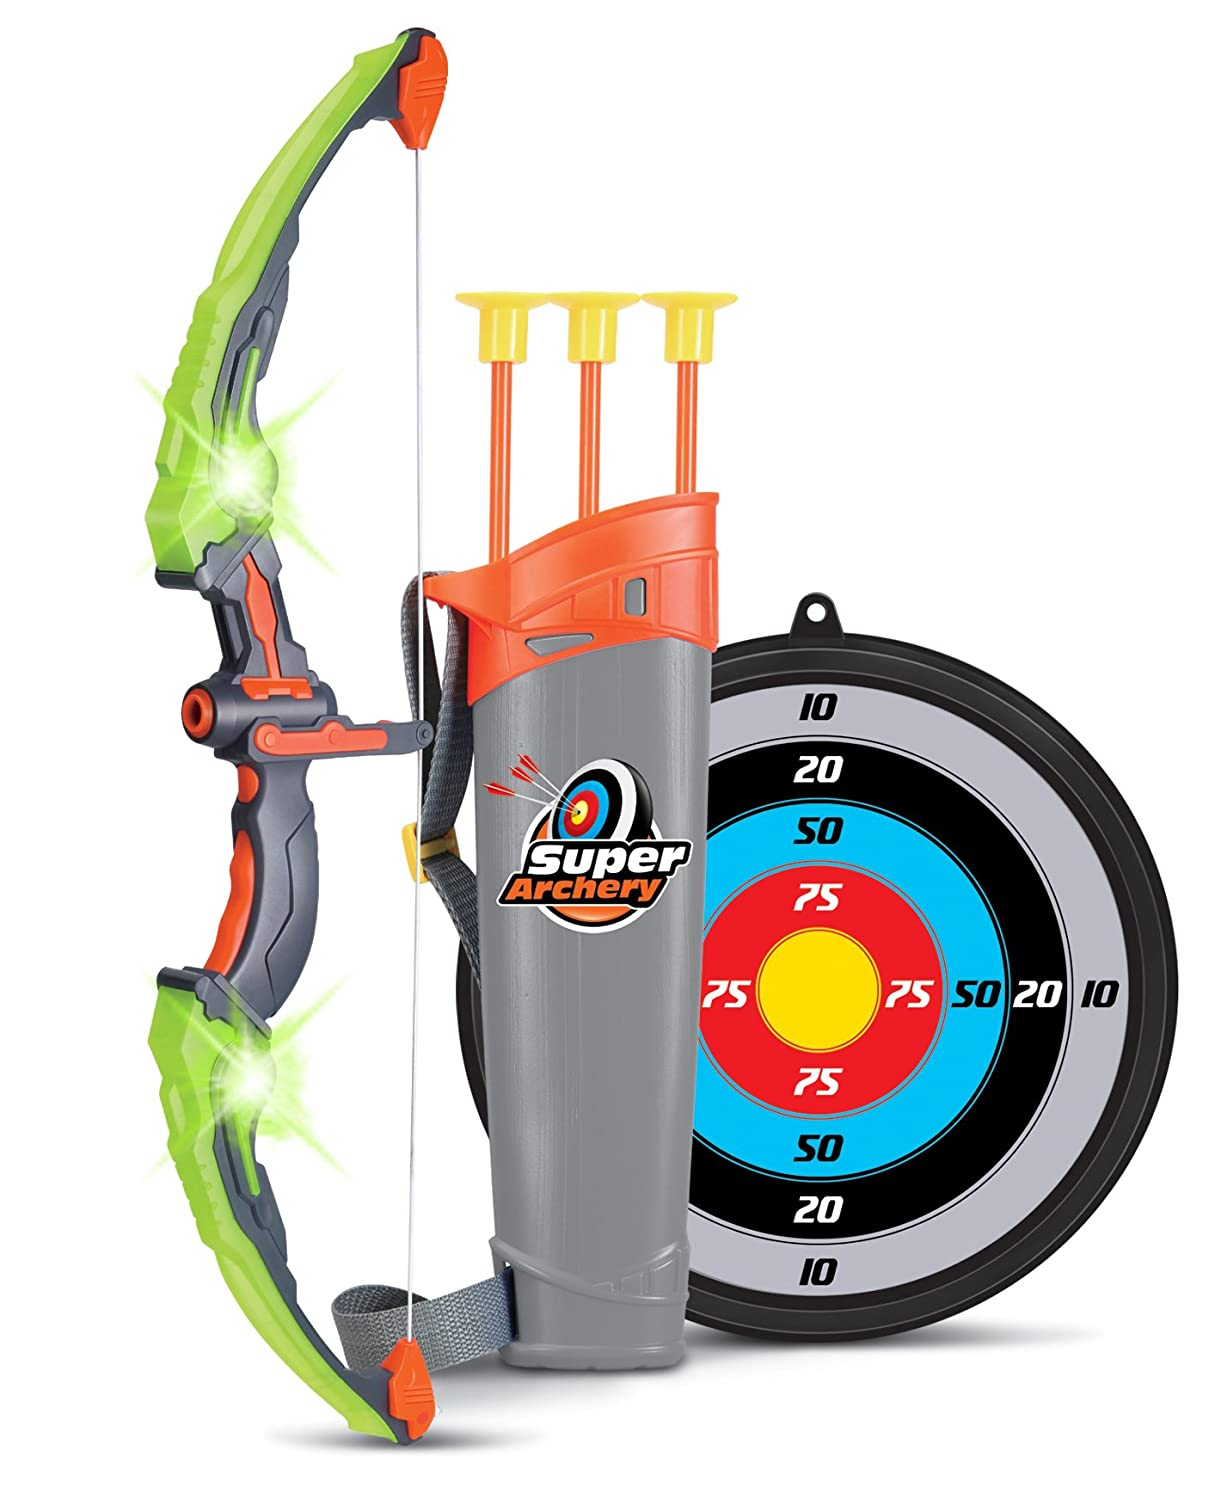 Light Up Archery Bow And Arrow Toy Set